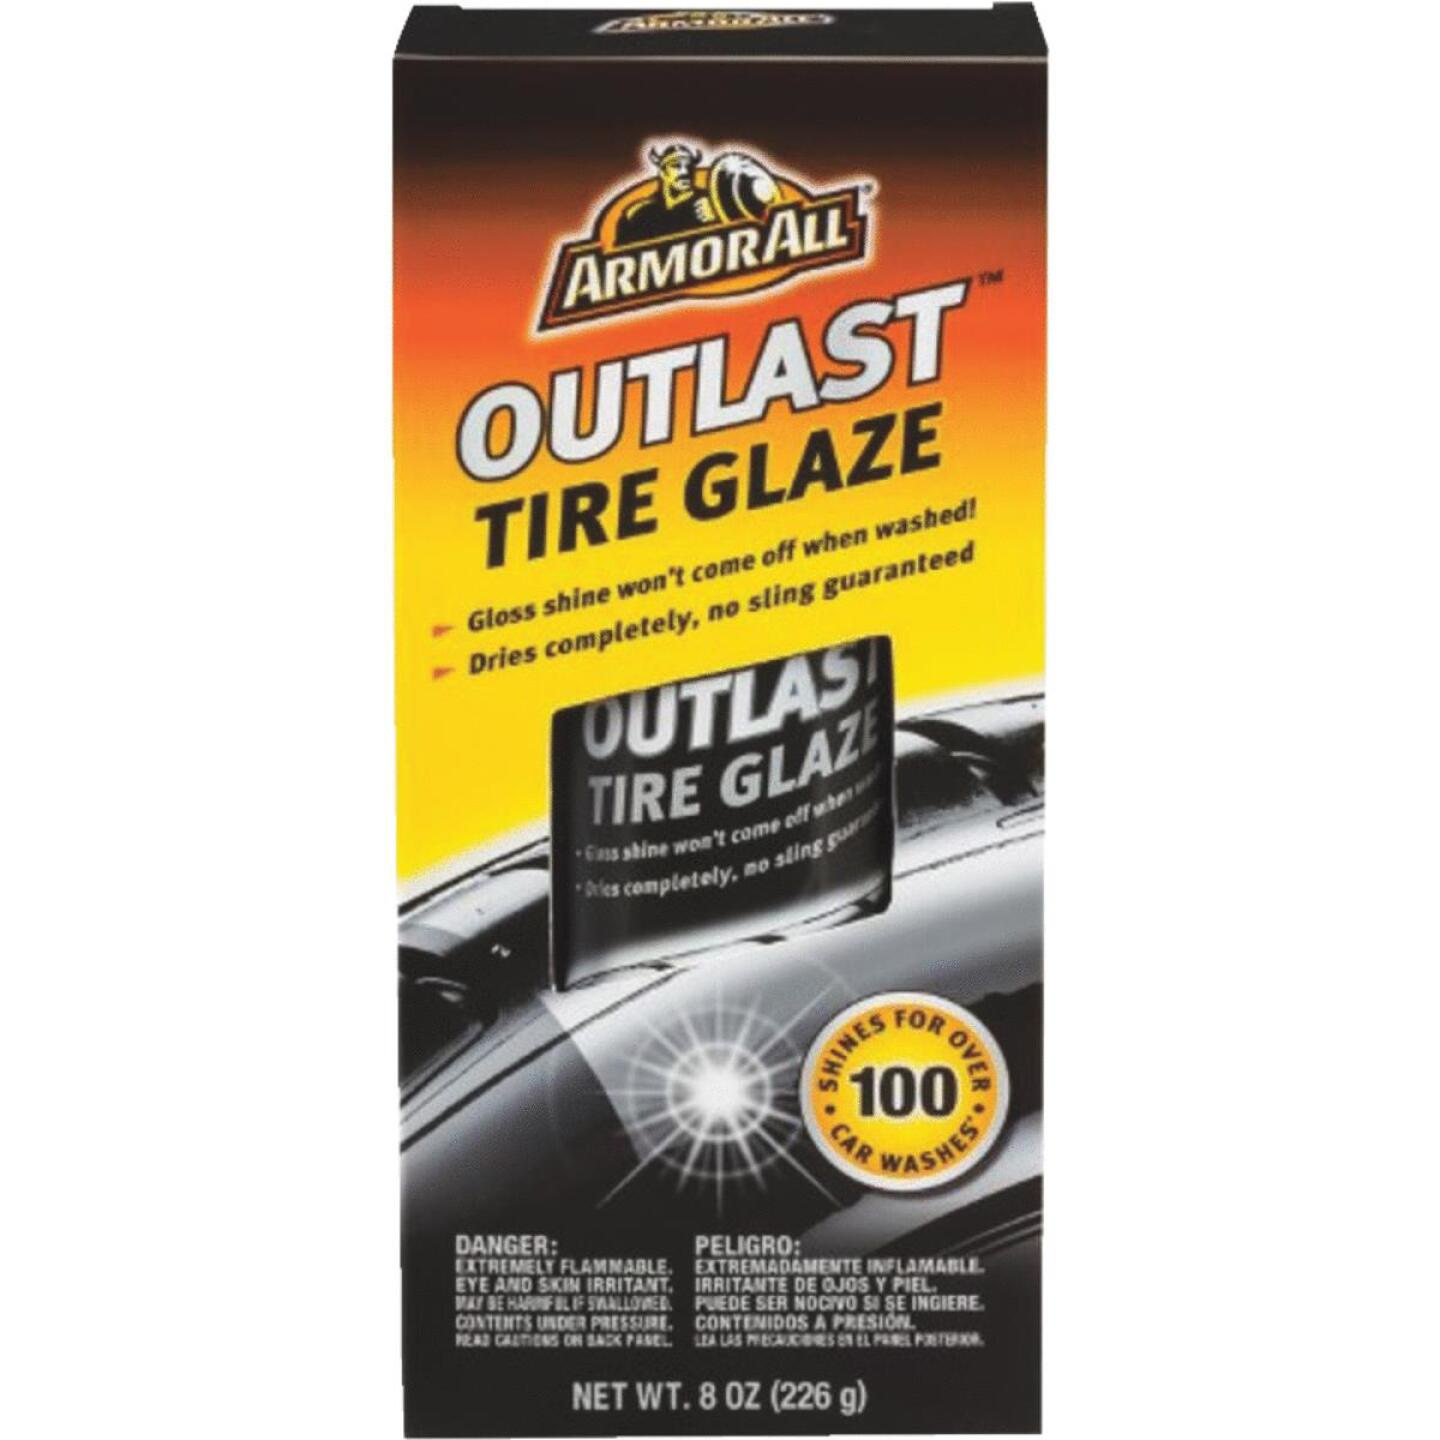 Armor All OUTLAST 8 Oz. Aerosol Spray Tire Shine Glaze Image 1